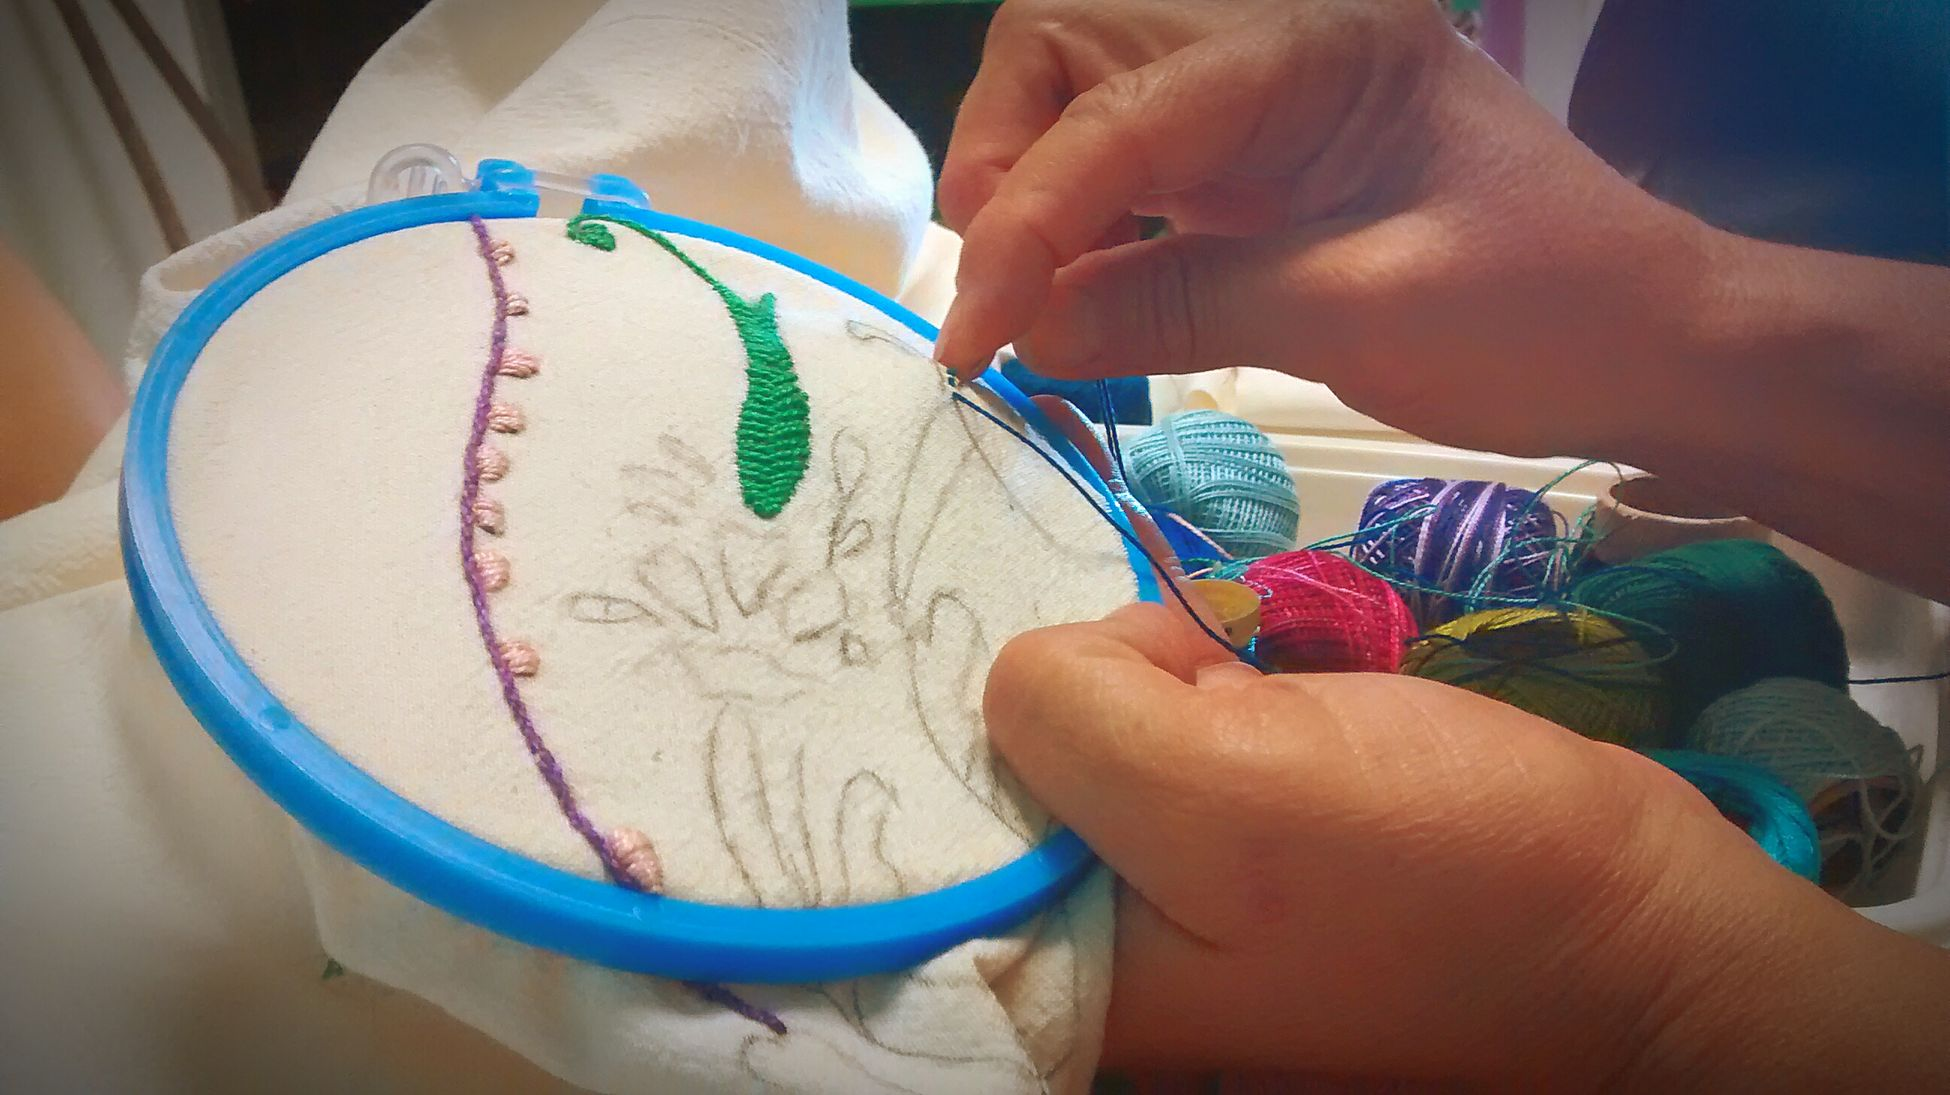 Embroidery Hand Embroidery Handmade Handcraft Embroidered Colors Of Coton Hands At Work Handicraft